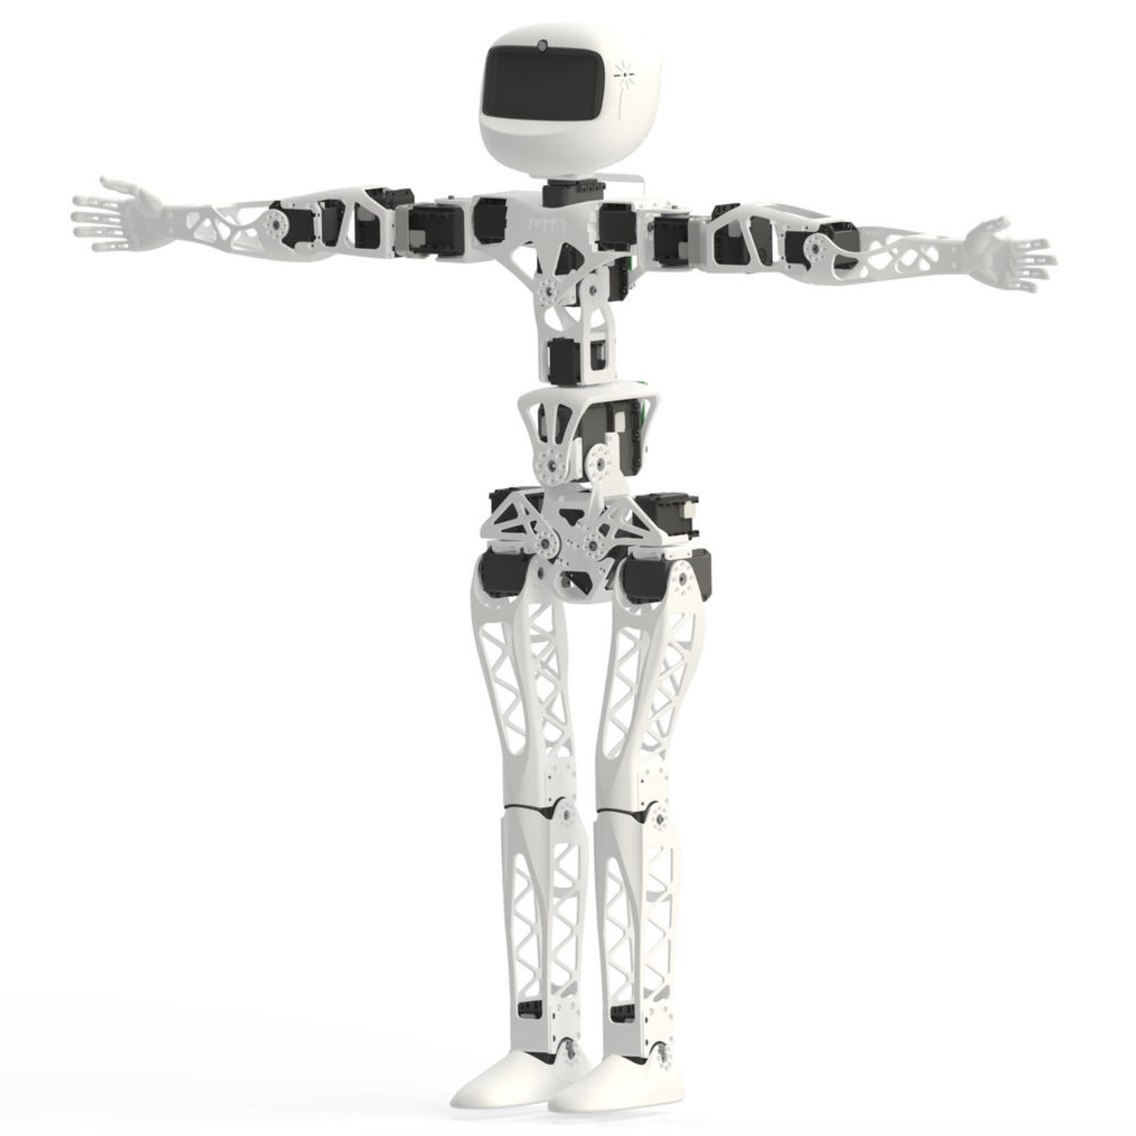 Capture d'écran 2017-06-21 à 15.44.06.png Download free STL file Poppy Humanoid • Design to 3D print, PoppyProject